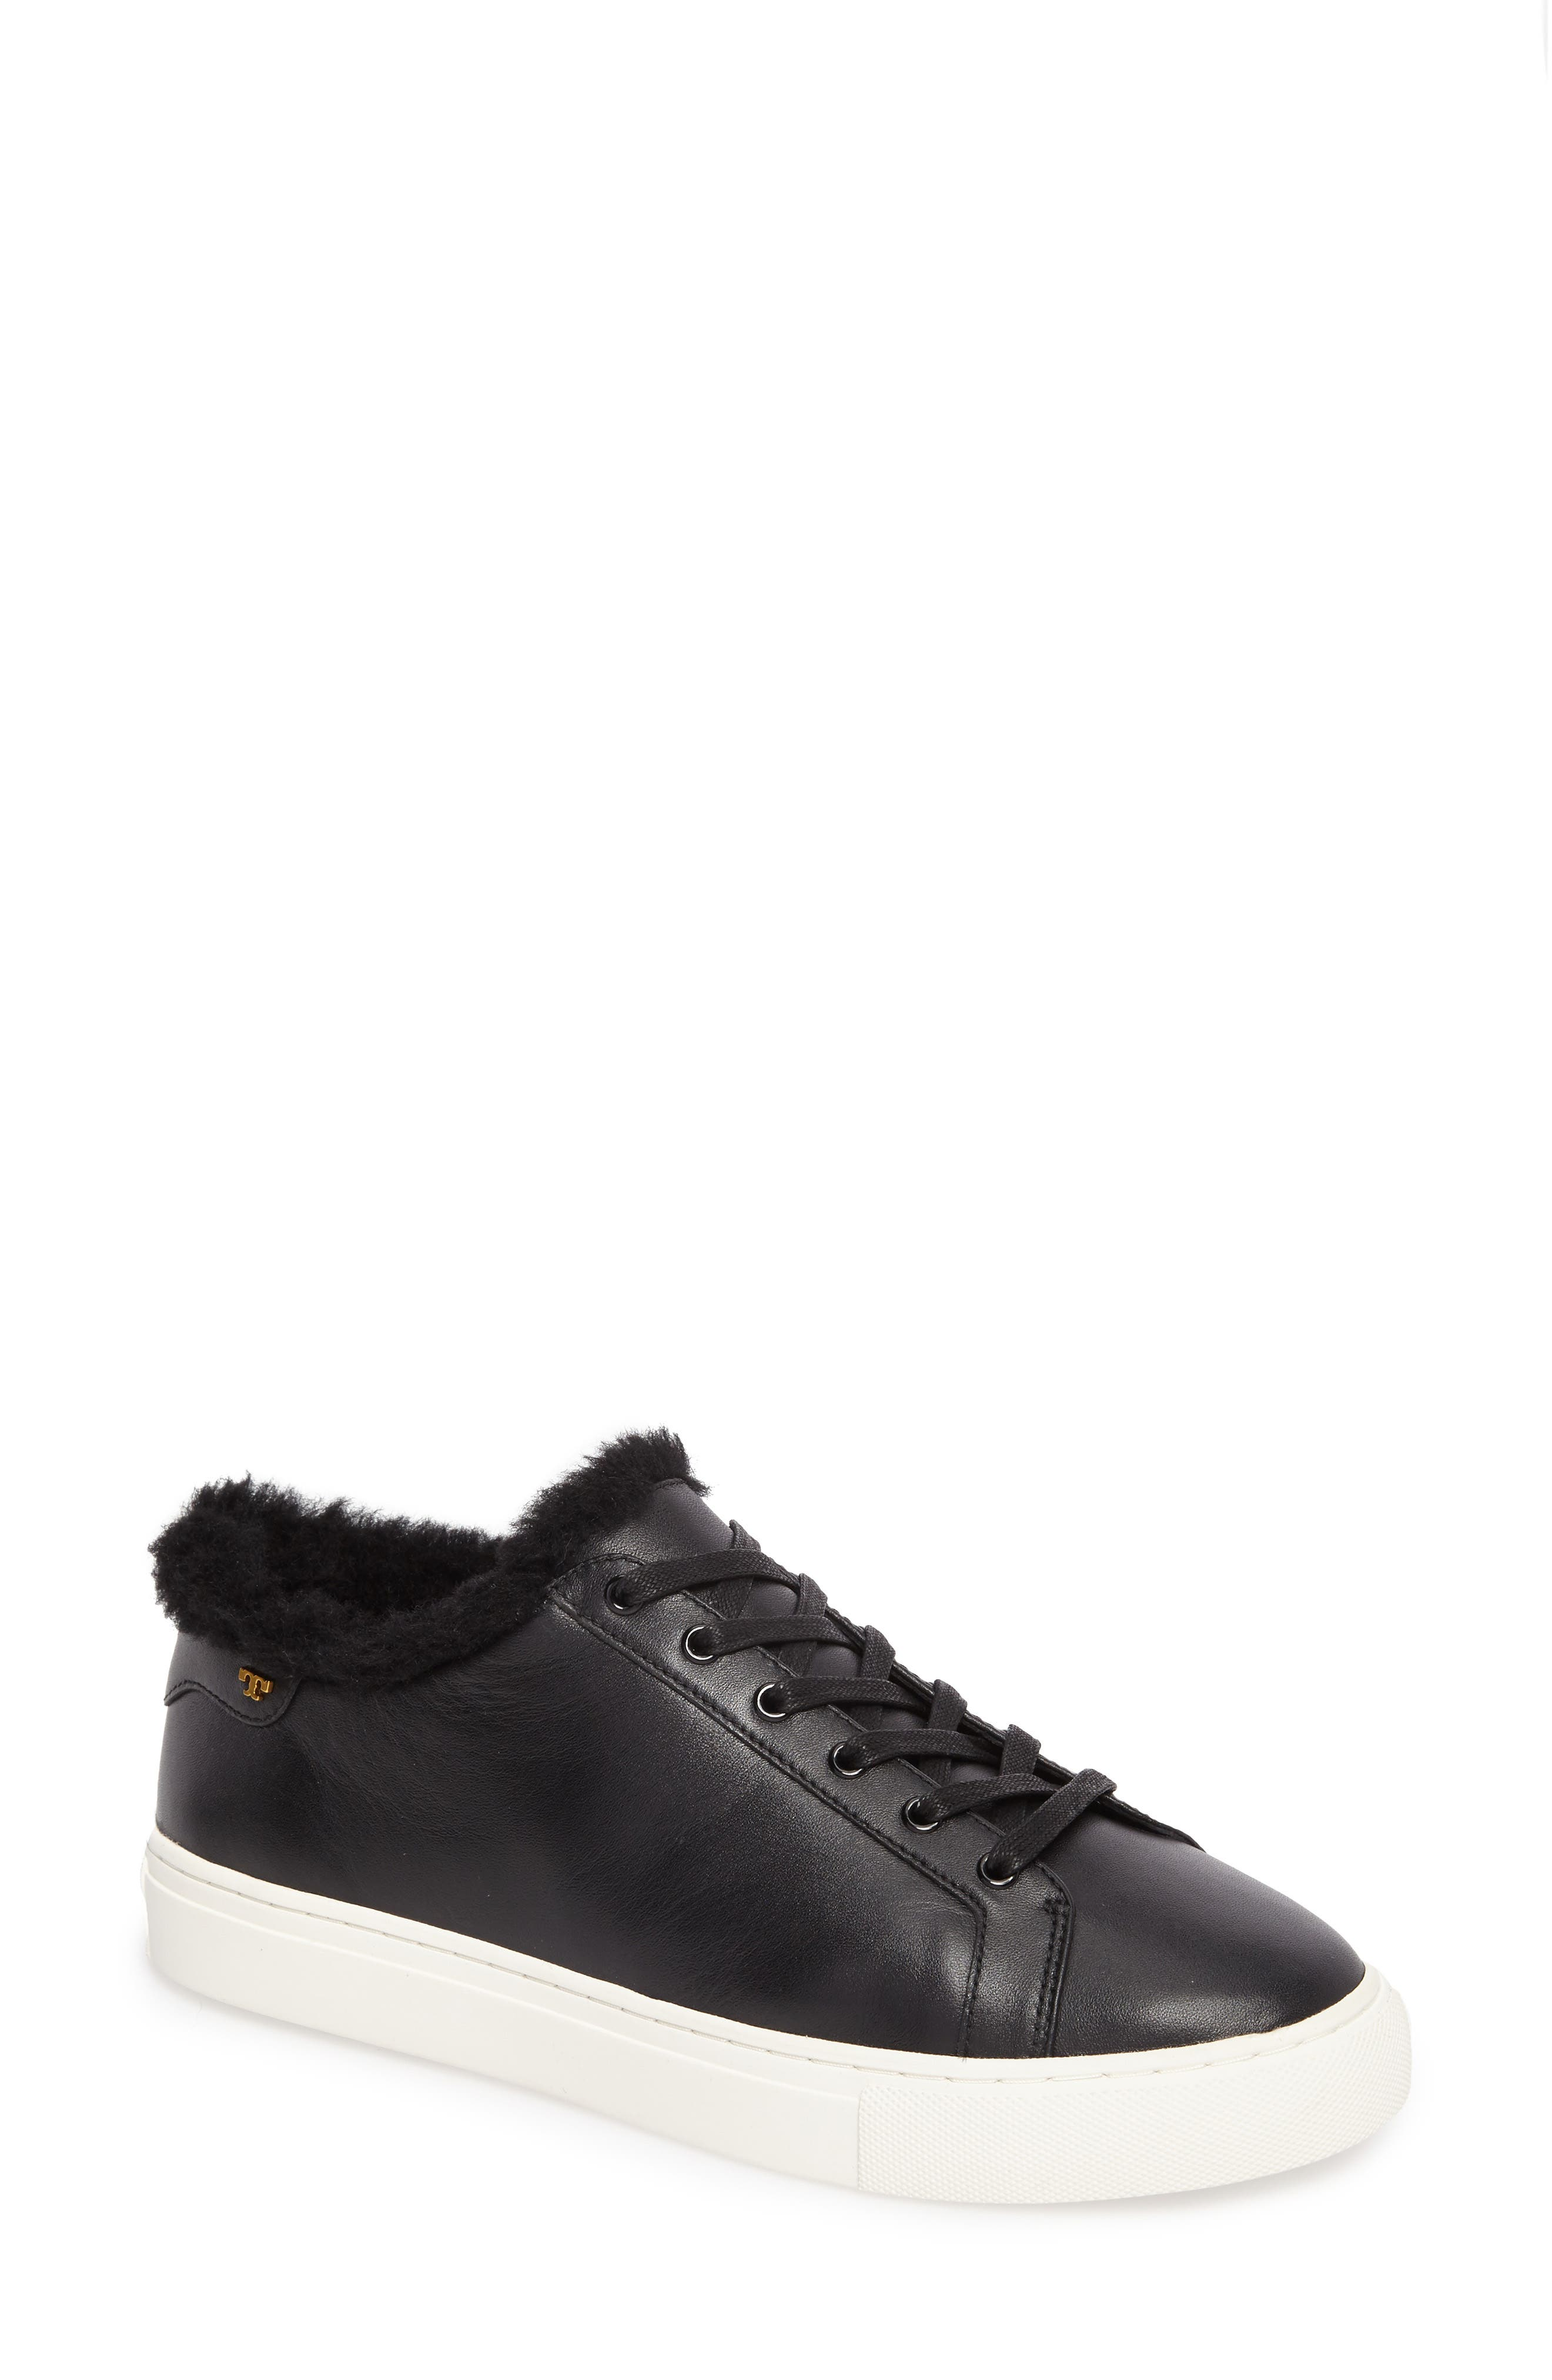 Lawrence Genuine Shearling Lined Sneaker,                         Main,                         color, 001